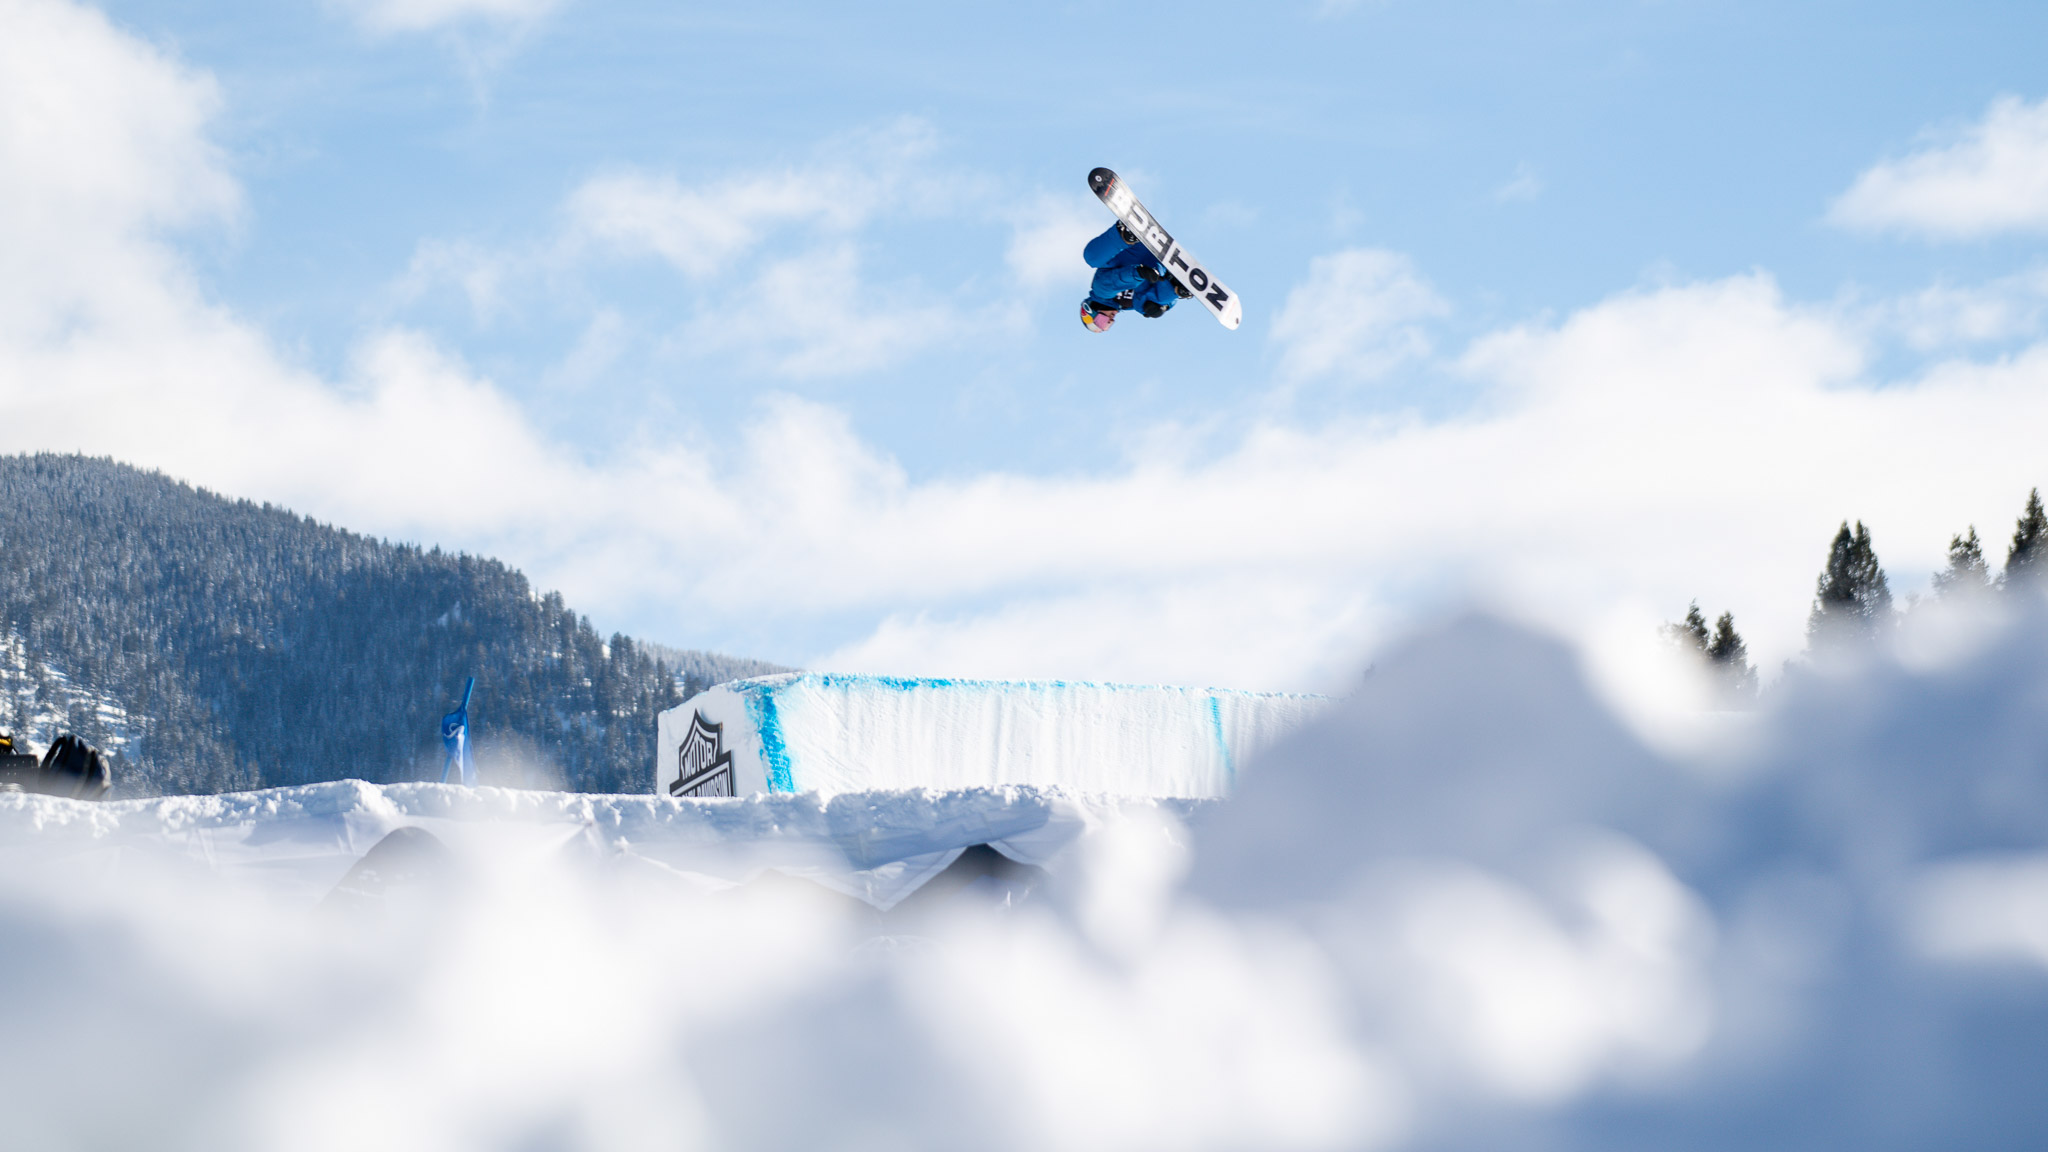 3. Mark McMorris